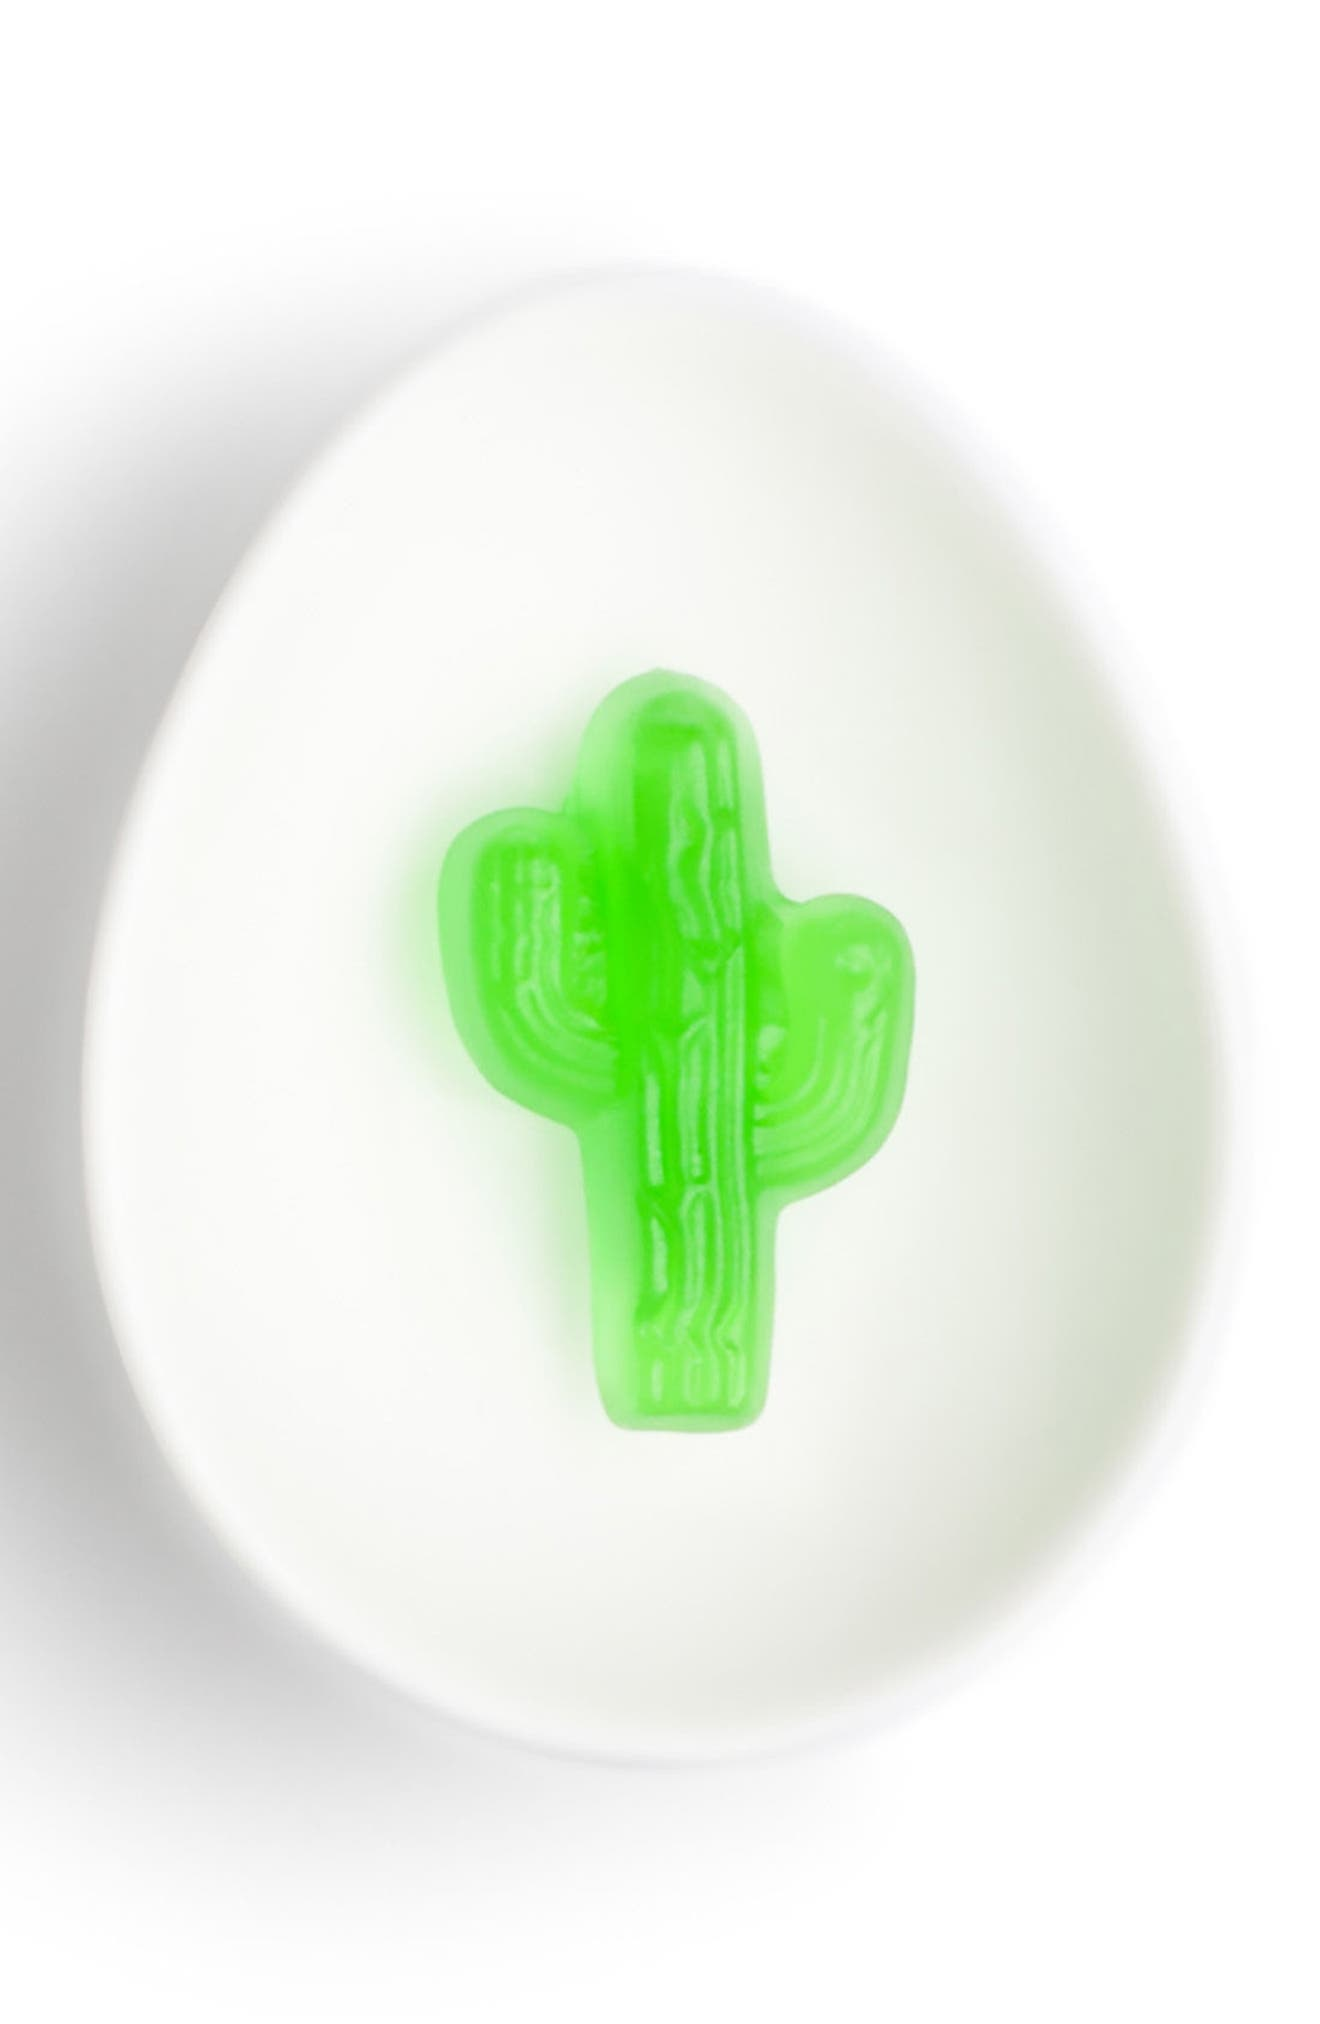 Alternate Image 2  - sugarfina Cowboy Cactus Set of 6 Candy Cubes